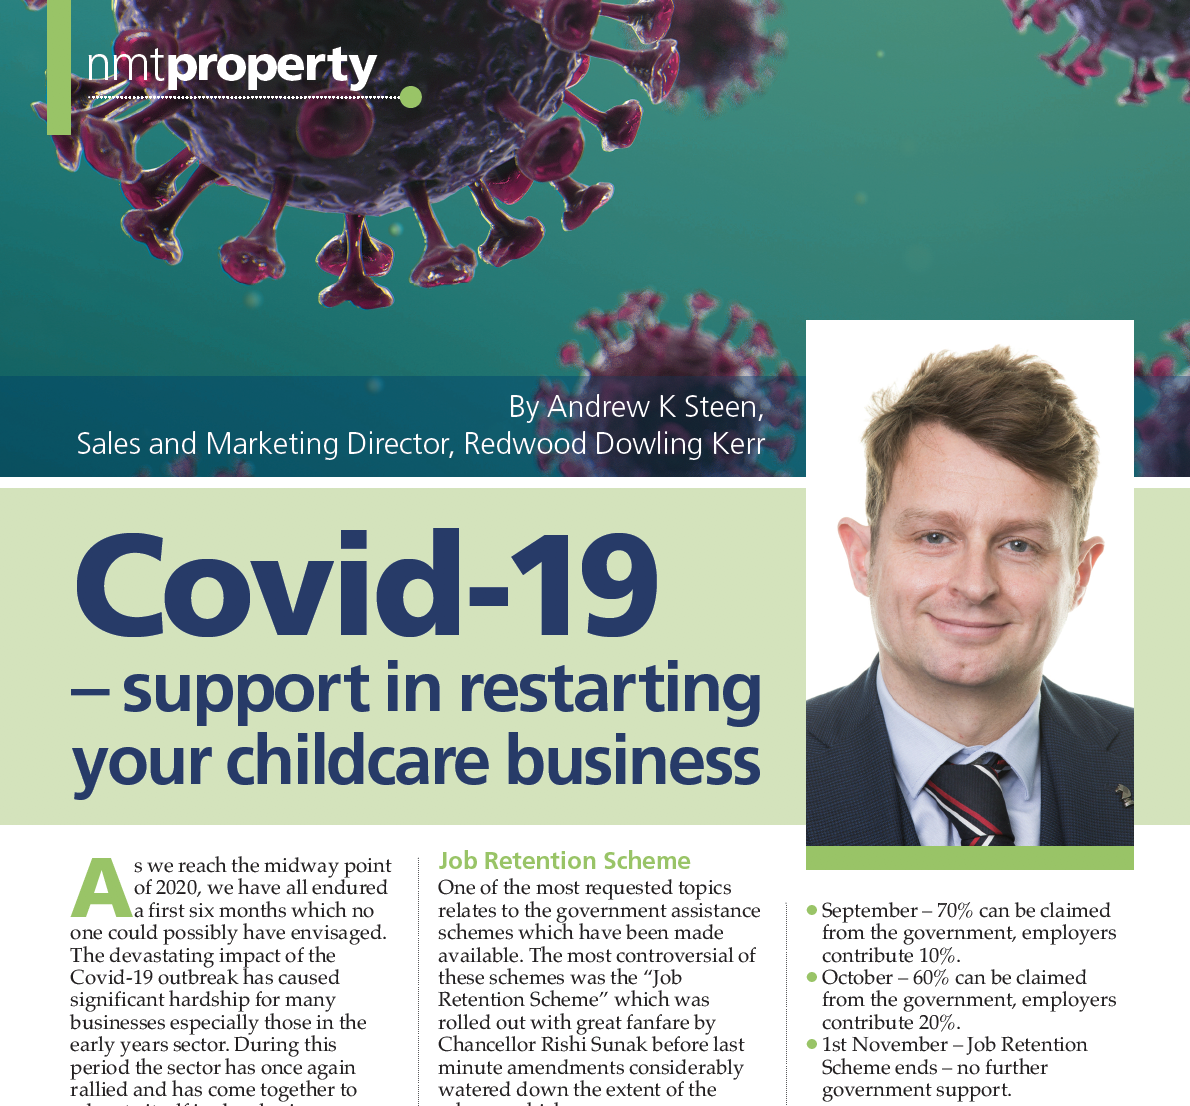 NMT Article Published on Covid19 – Support in Restarting your Childcare Business